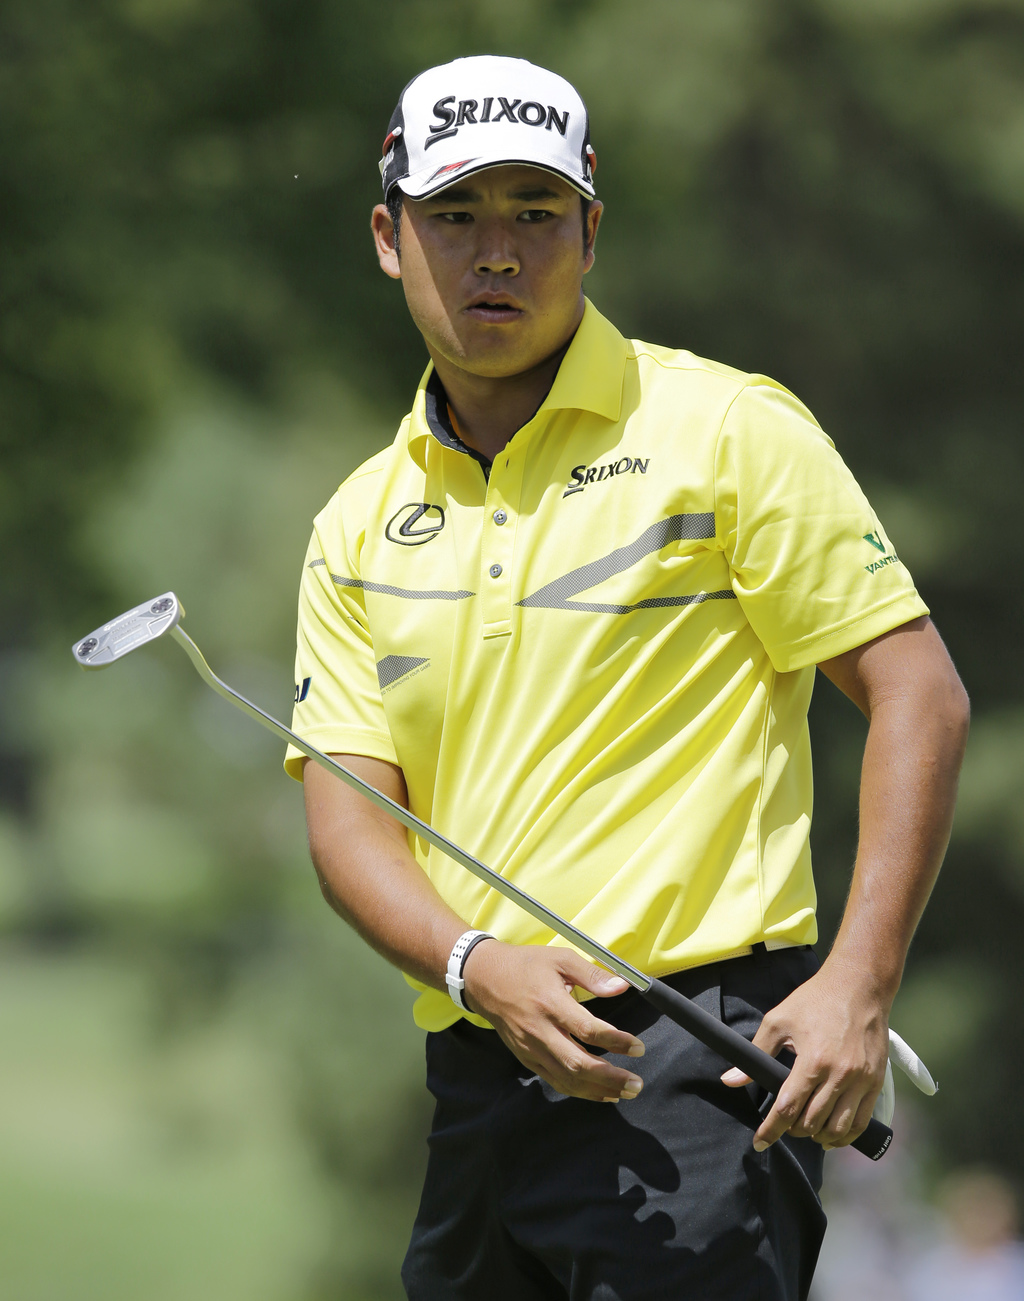 Hideki Matsuyama, from Japan, watches his putt on the second green during the third round of the Bridgestone Invitational golf tournament at Firestone...